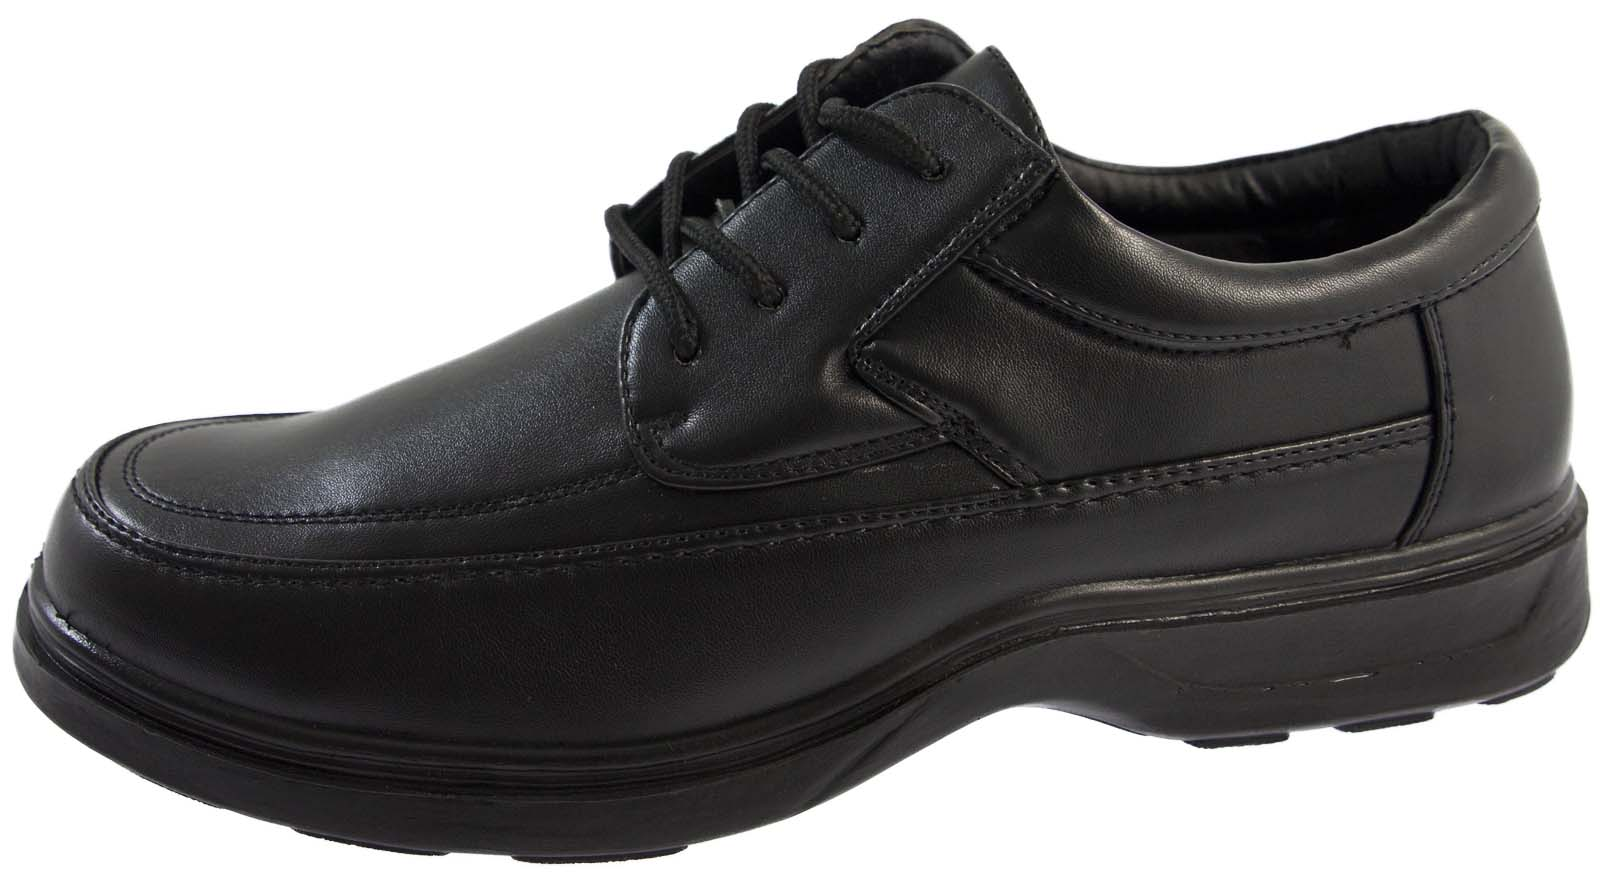 Mens Wide Ing Comfort Shoes Formal Flexible Sole